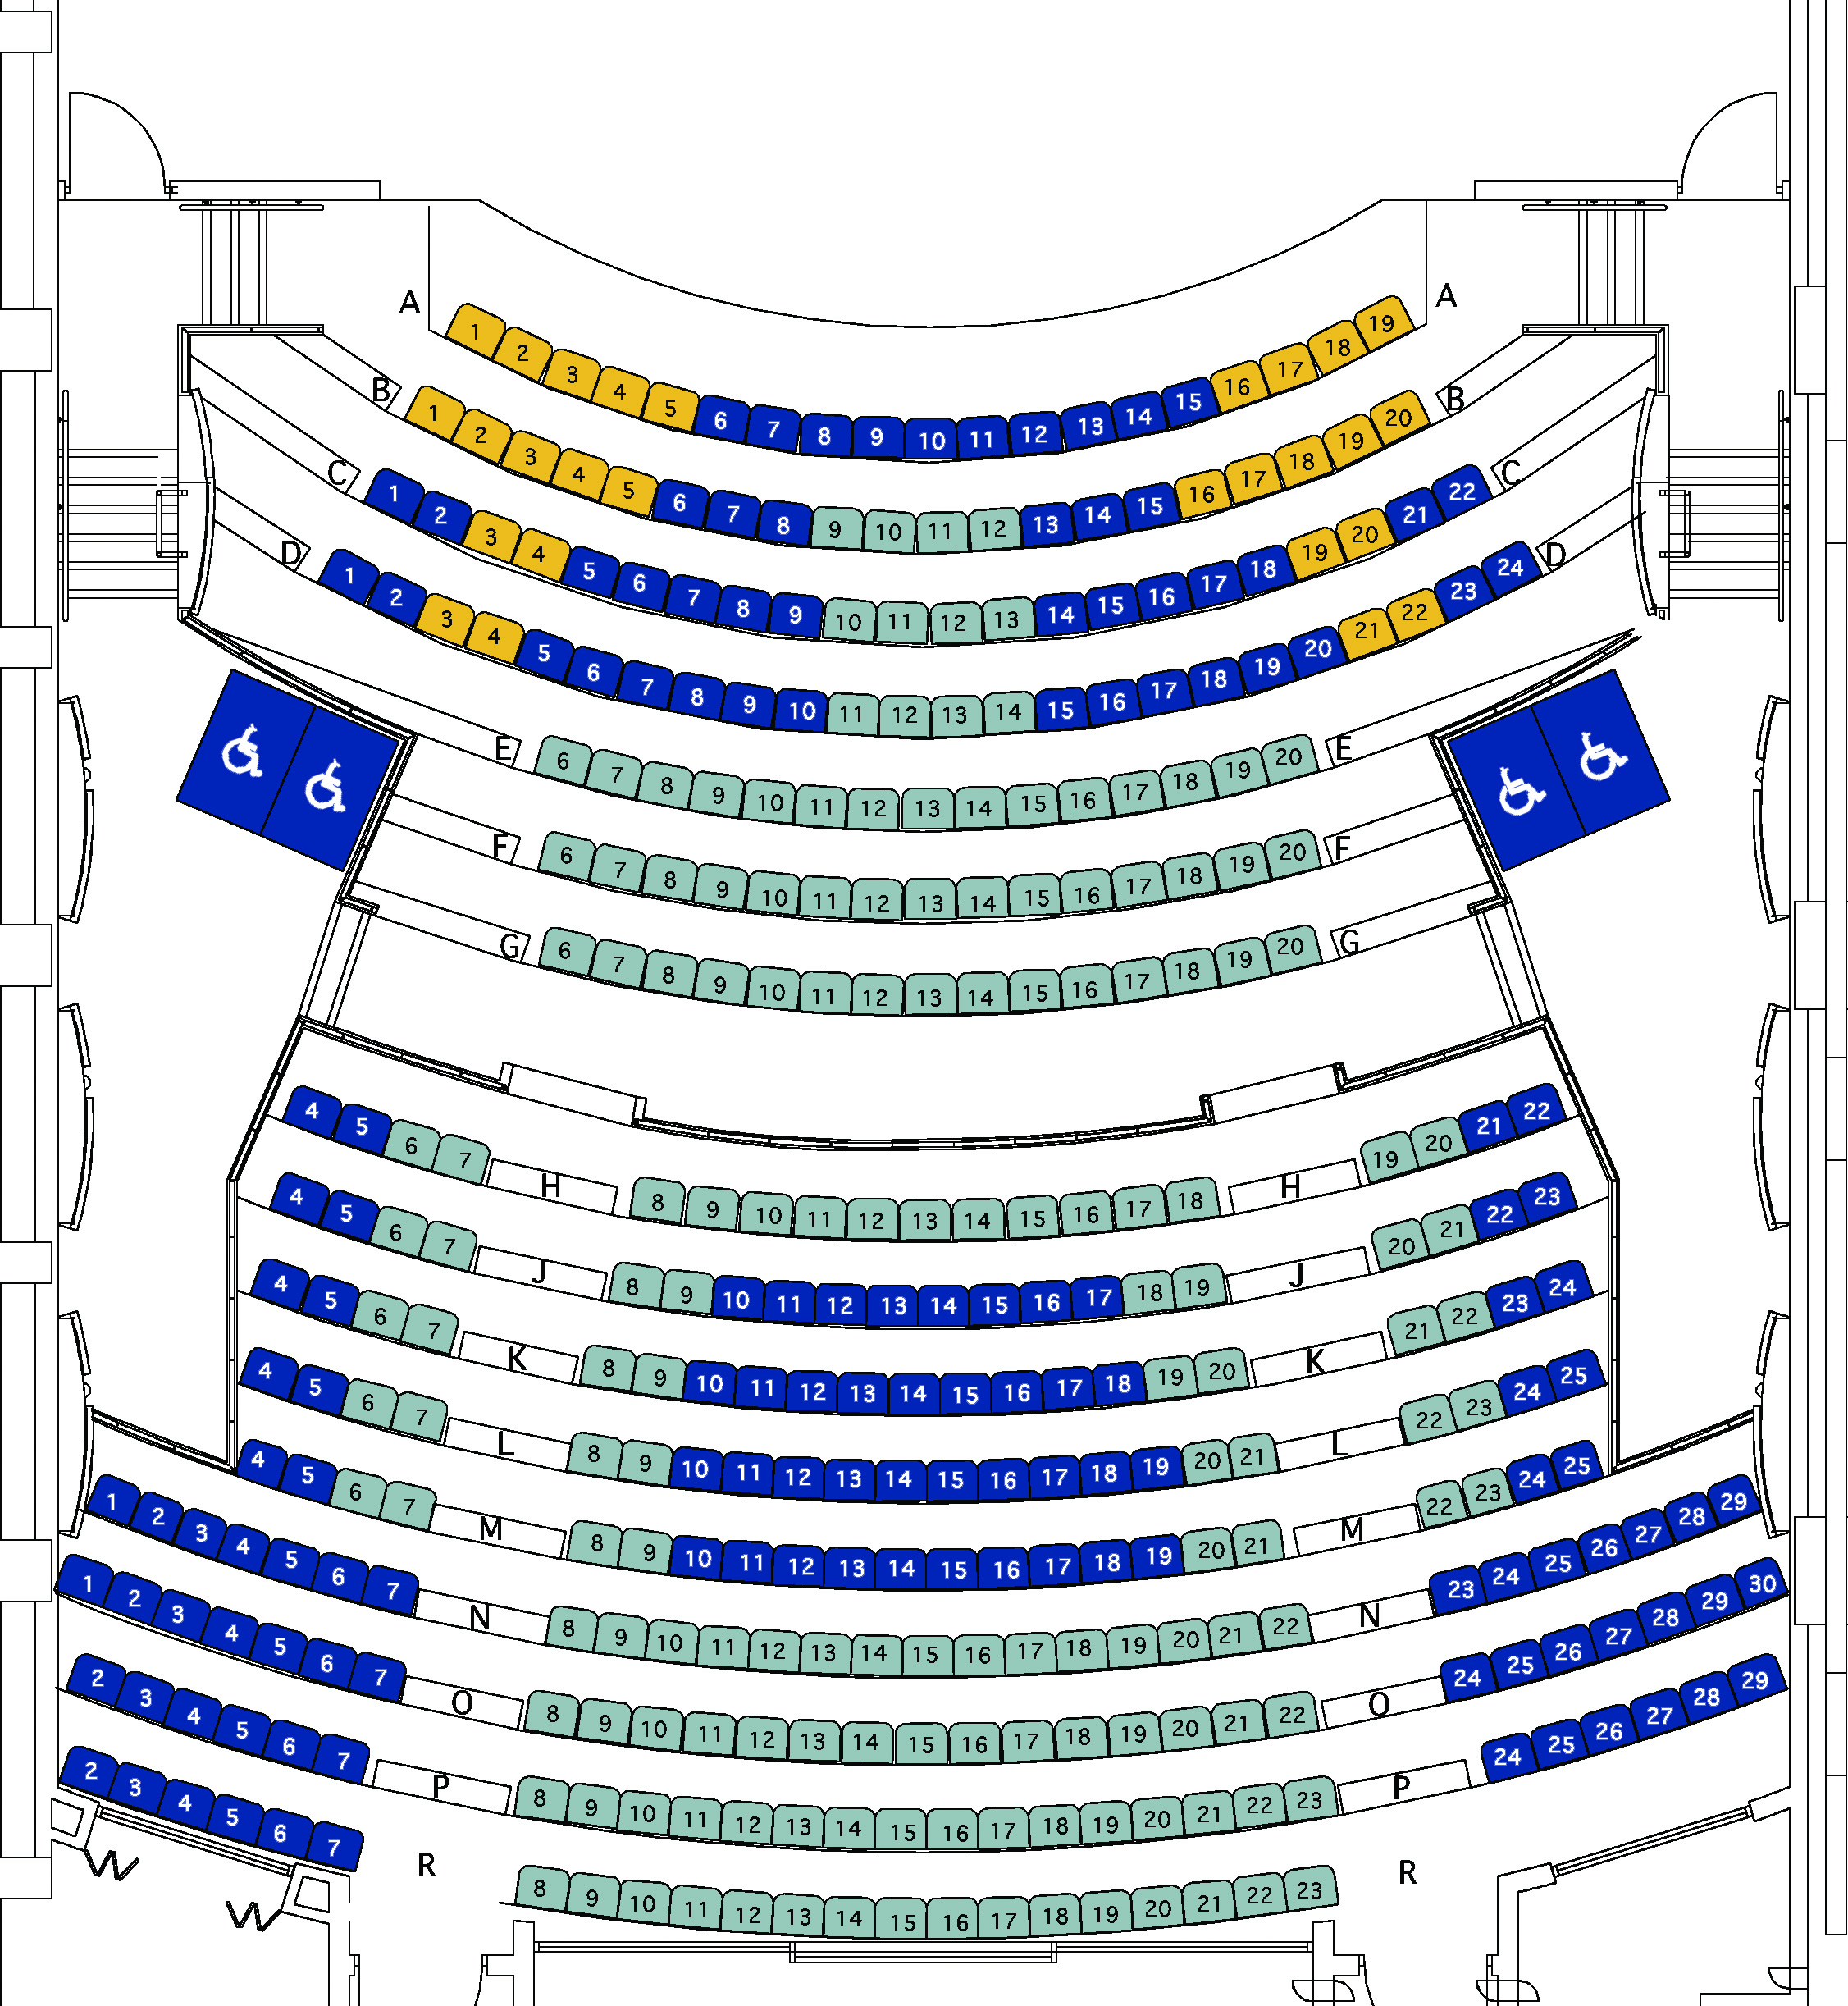 Playhouse Theatre Seating Map   (click to enlarge)